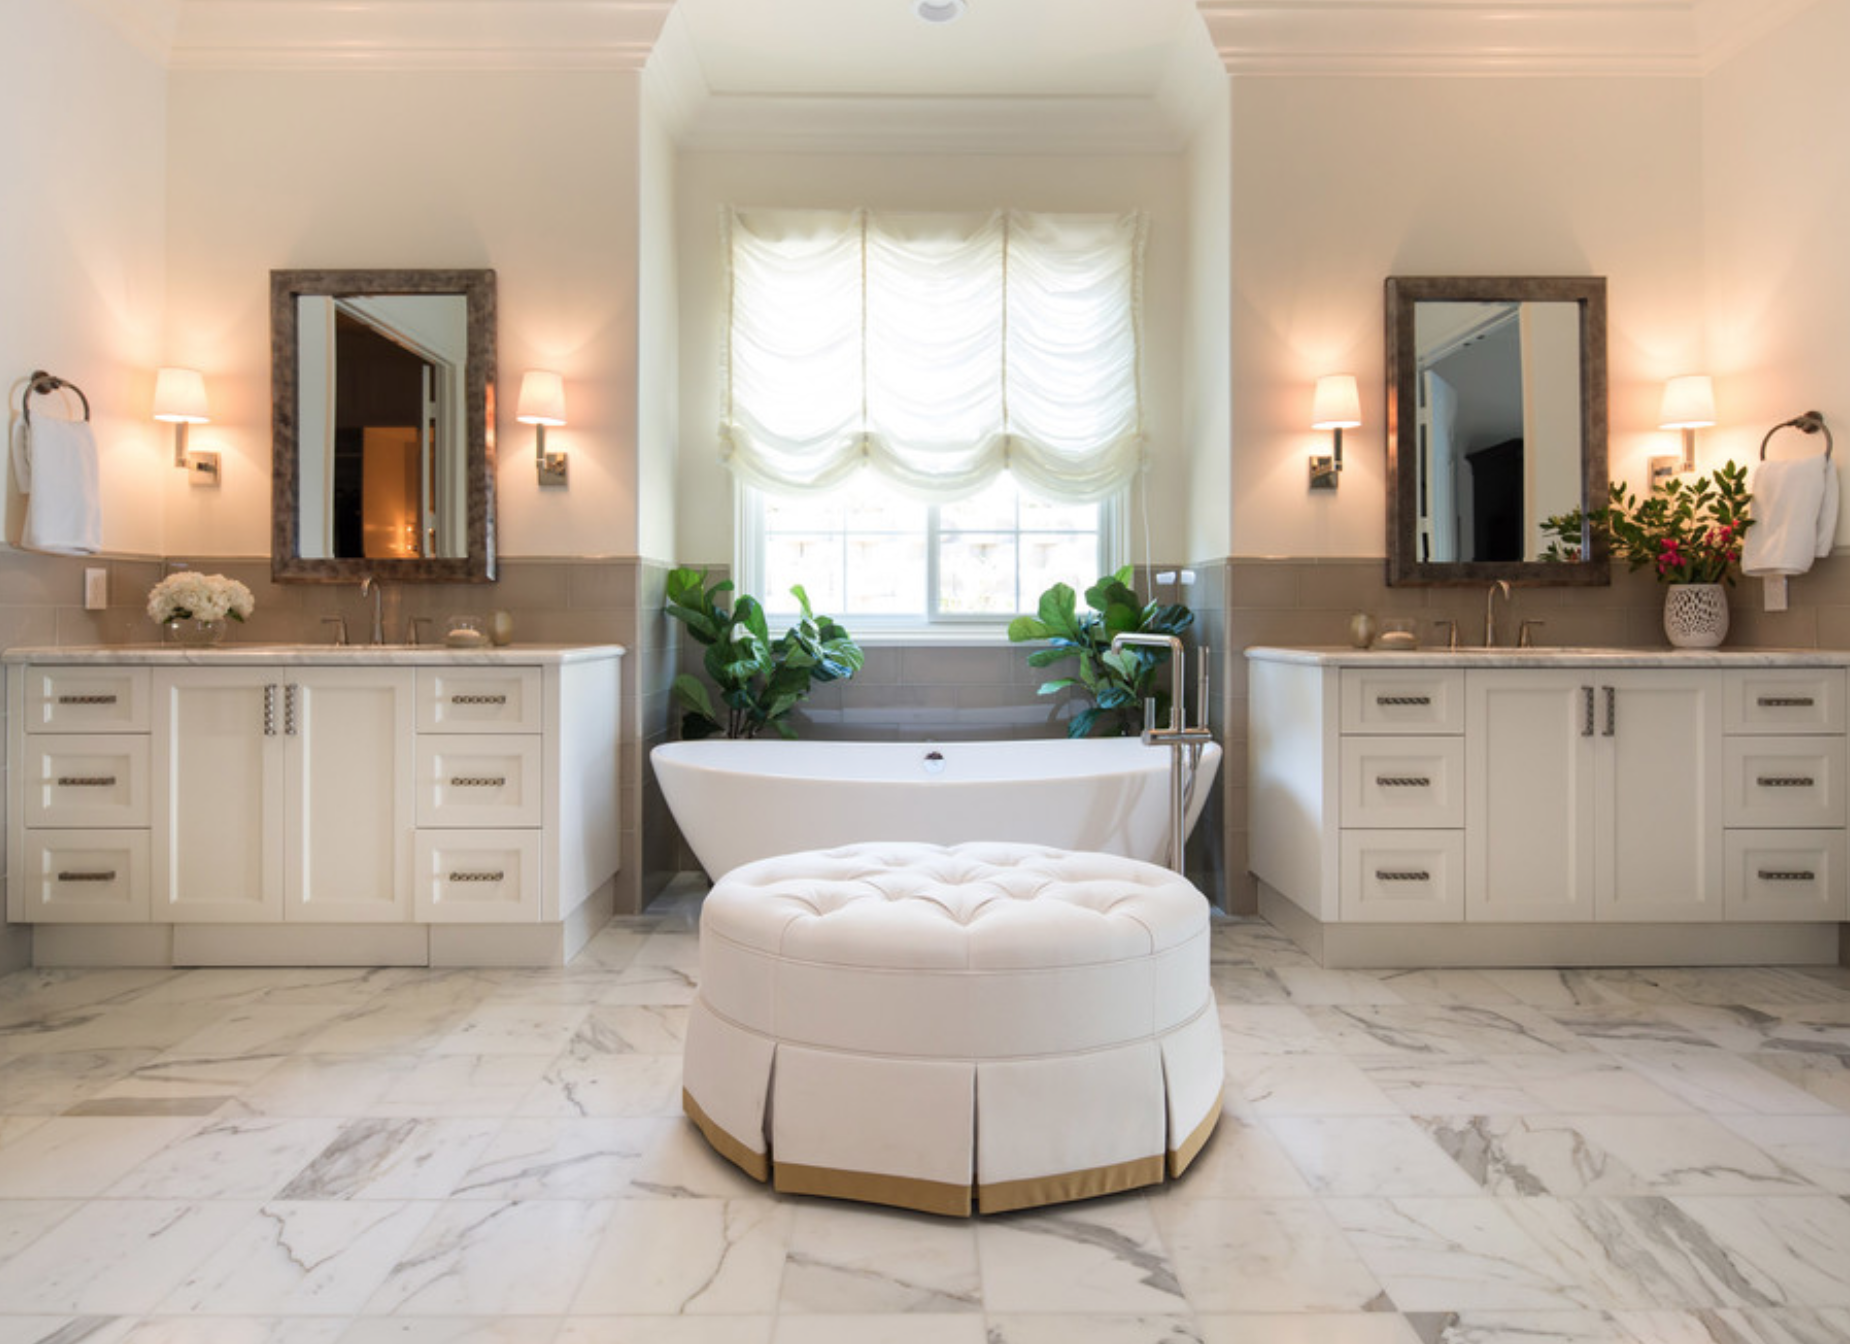 The 6 Features of a Dream Bathroom